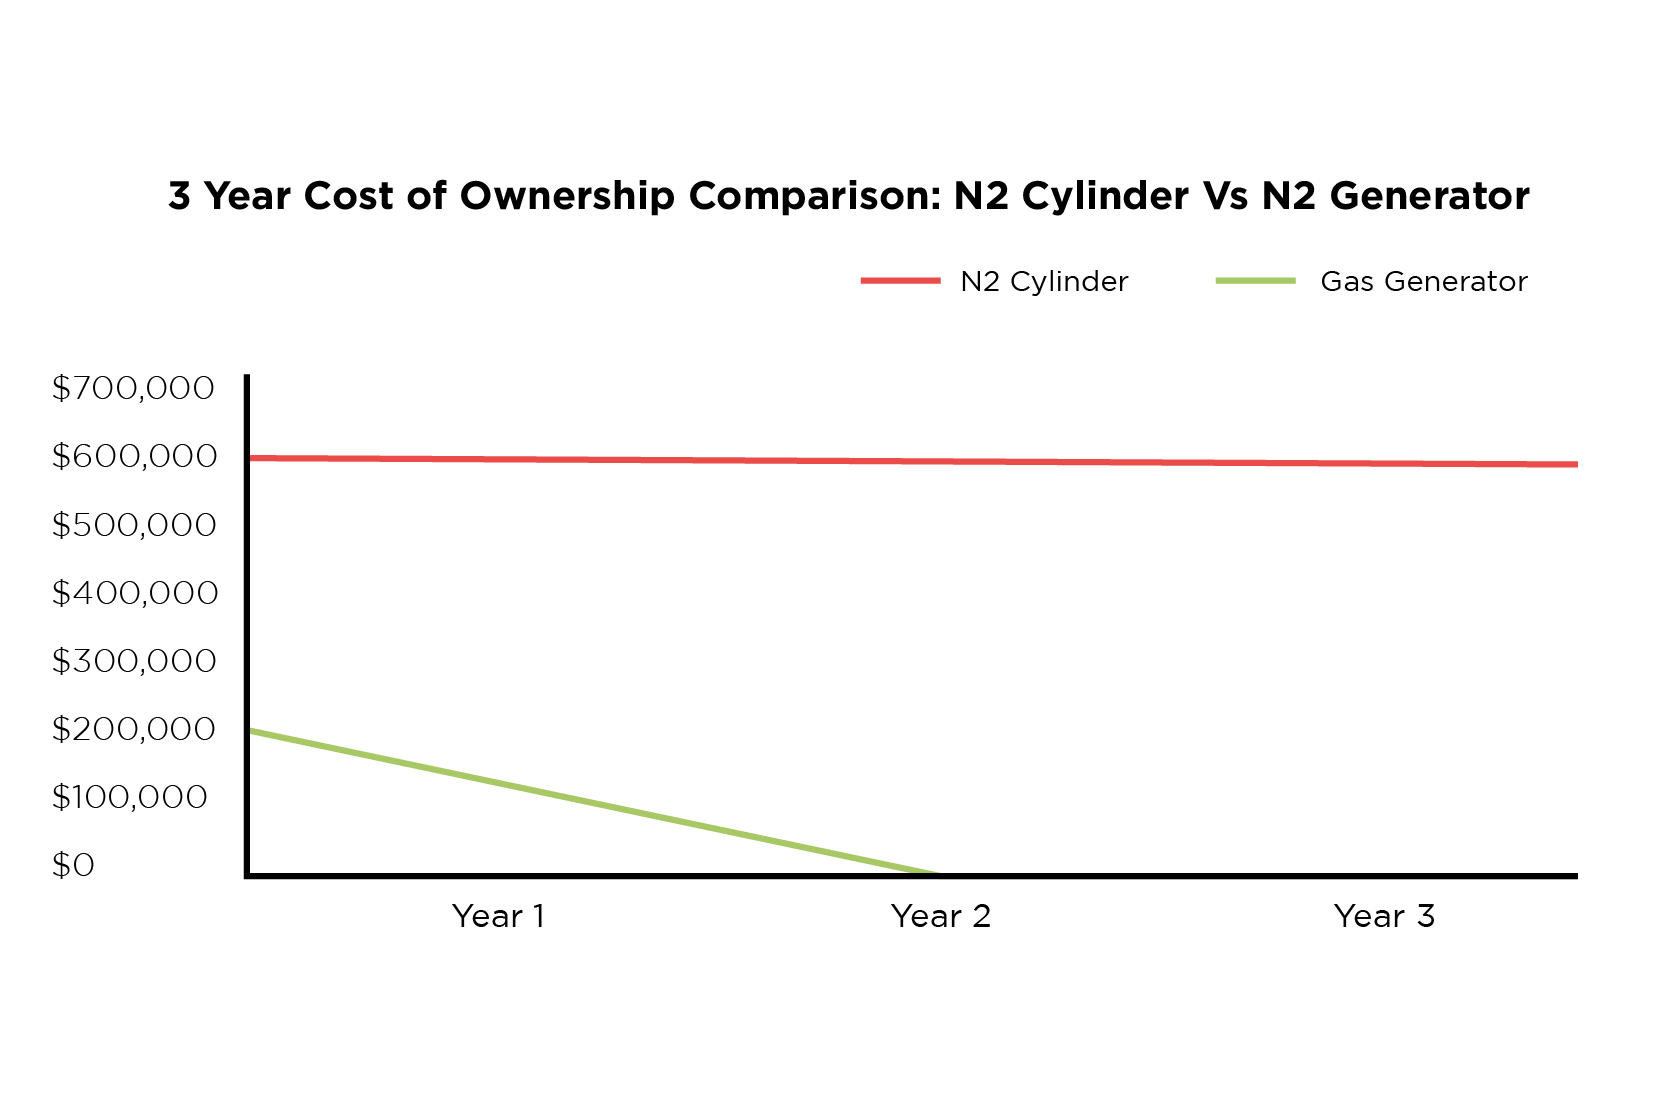 3 Year cost of ownership: N2 cylinder vs N2 generator